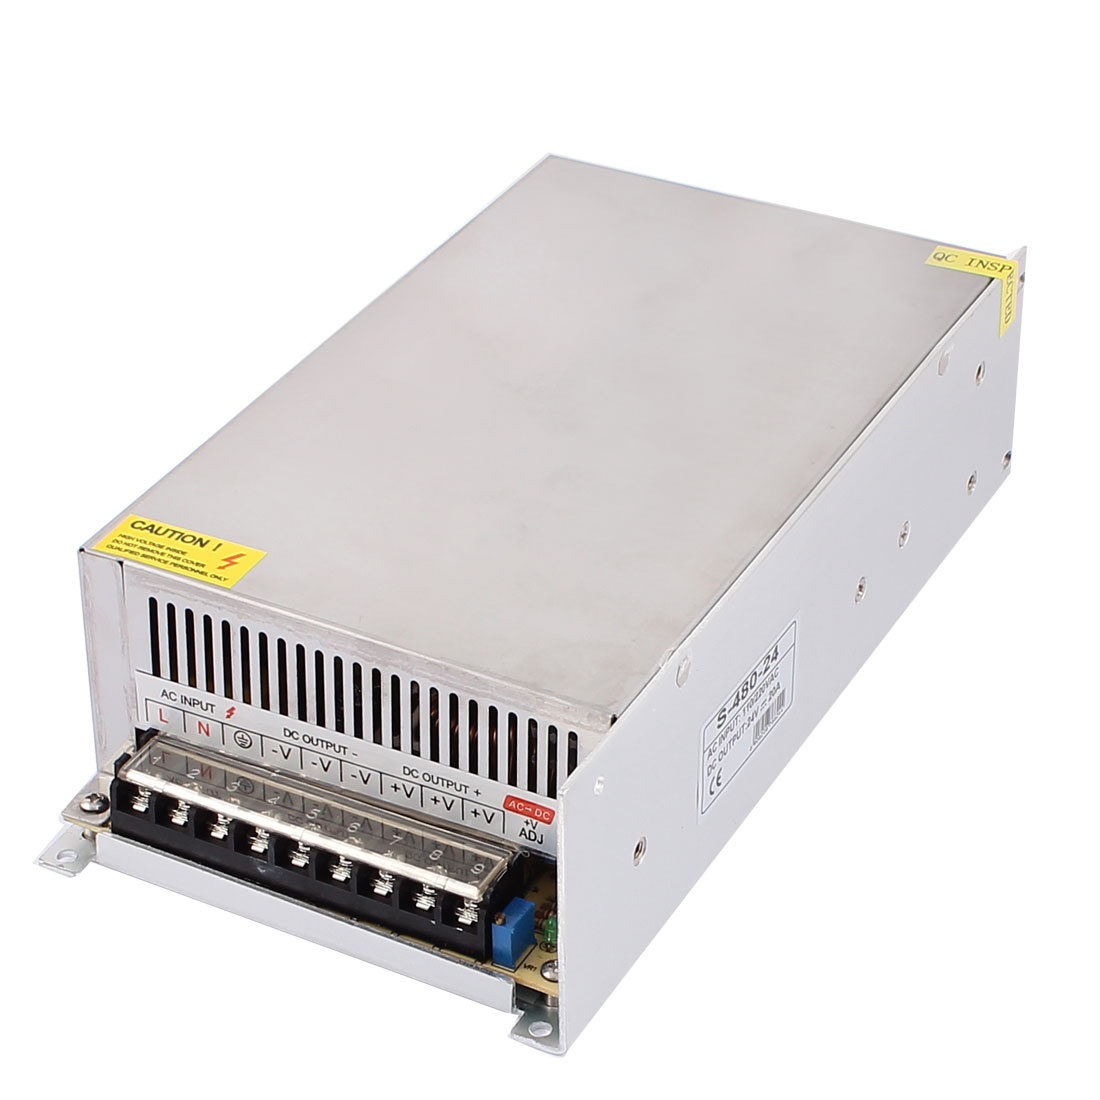 DC 24V 20A 480W 9 Terminals Power Supply Switching Converter for LED Strip Light